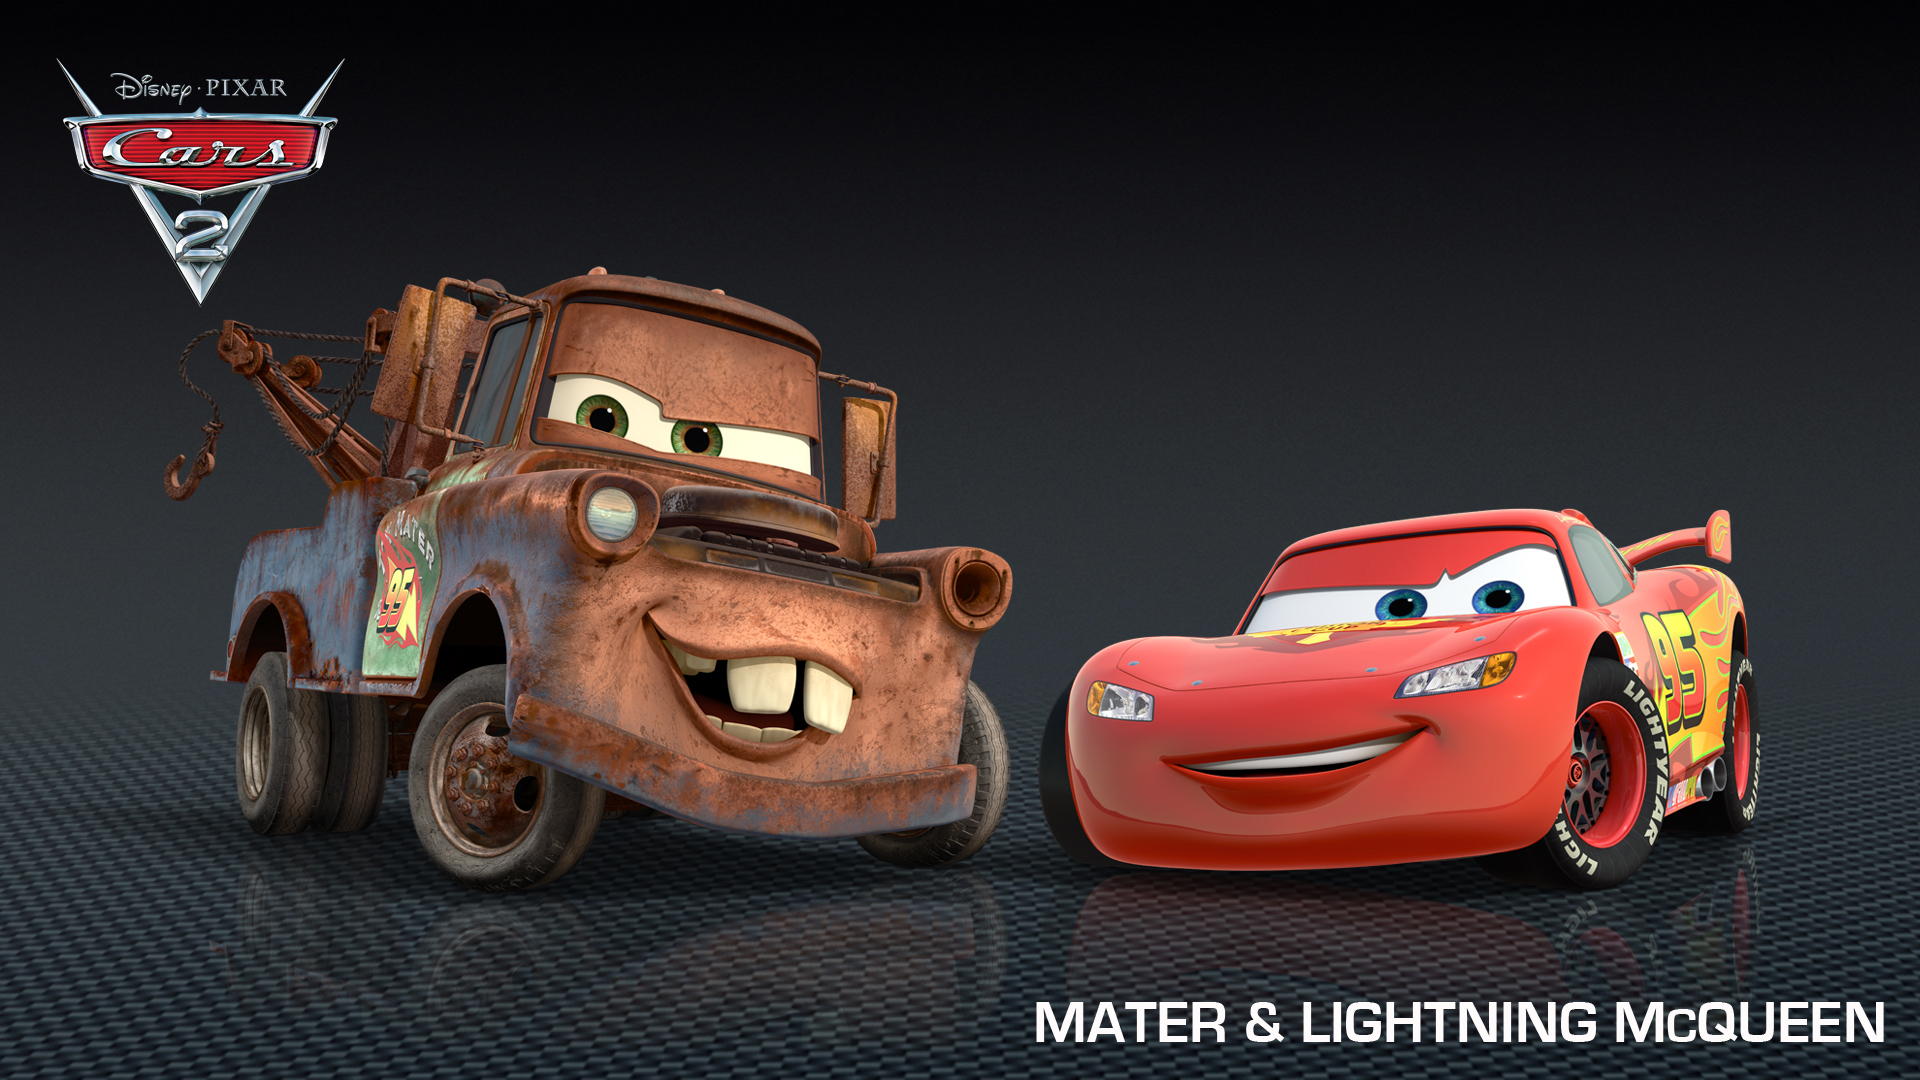 mater lightning mcqueen from cars 2 hd wallpapers. Black Bedroom Furniture Sets. Home Design Ideas